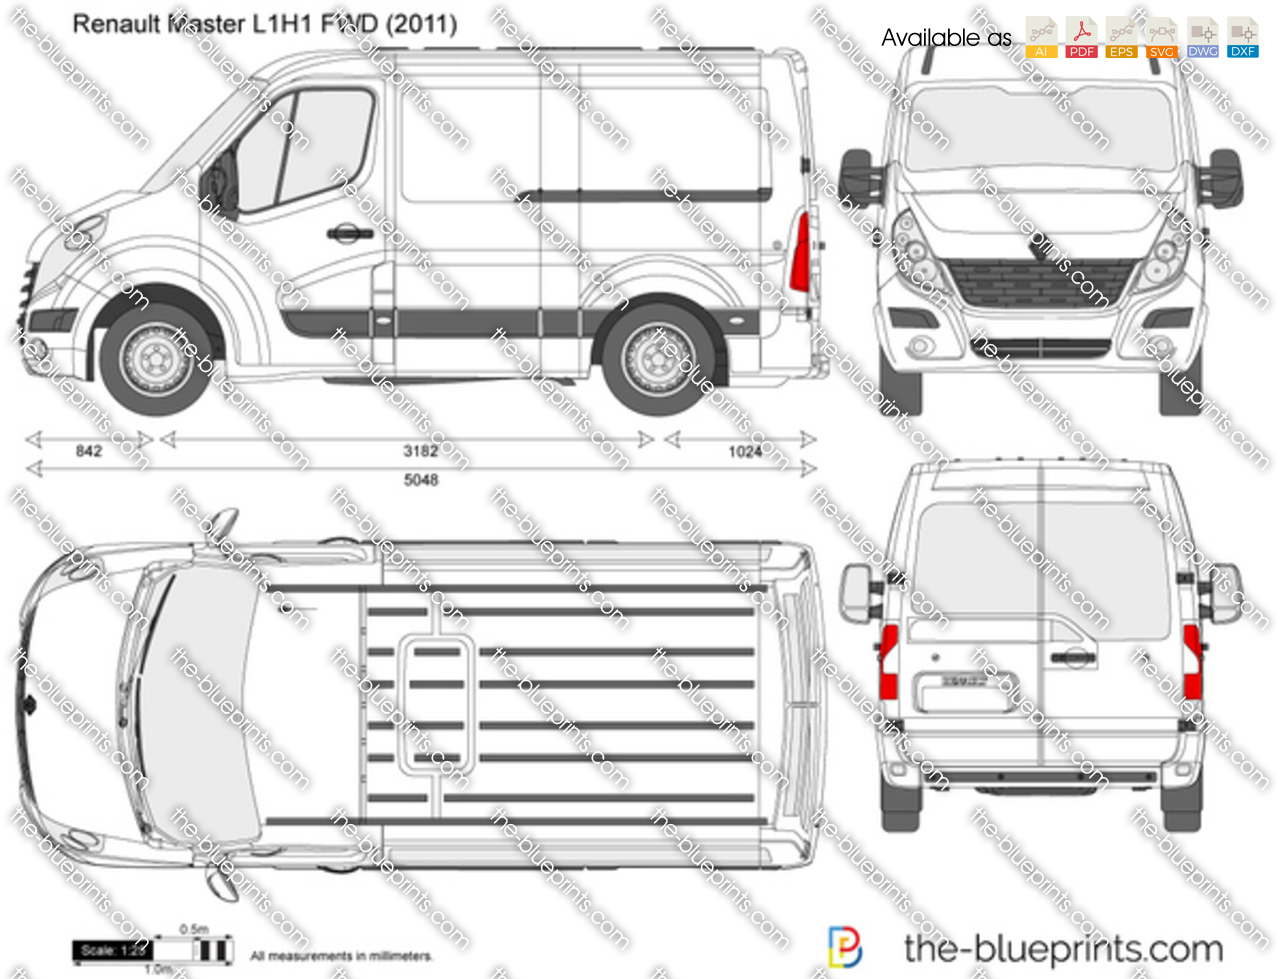 renault master l1h1 fwd vector drawing. Black Bedroom Furniture Sets. Home Design Ideas